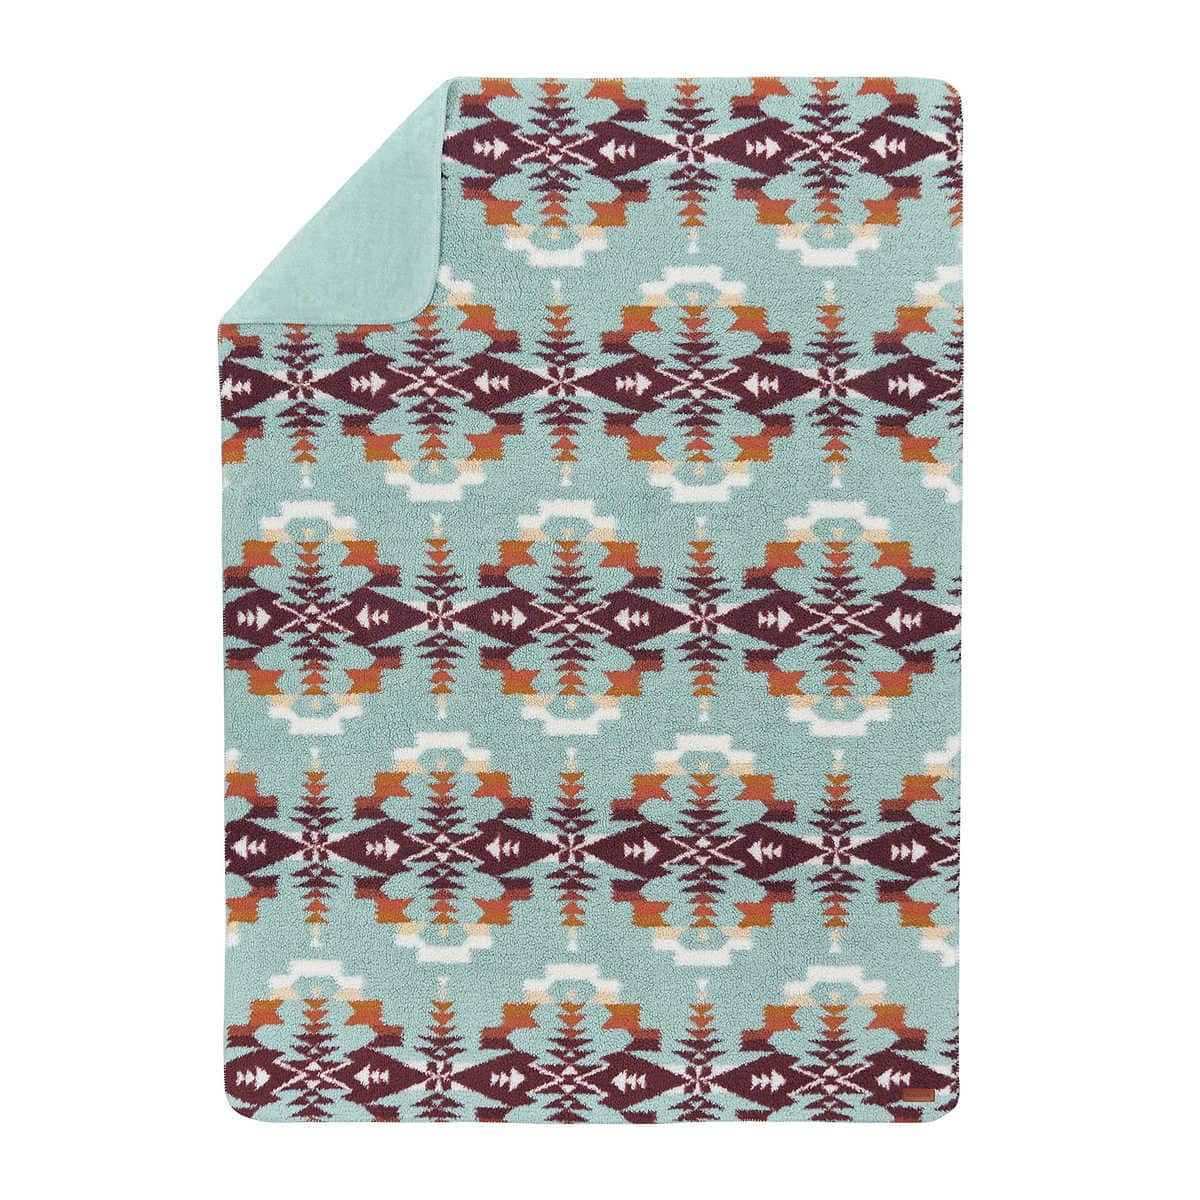 Pendleton Sherpa Fleece Blanket (Sizes: Twin, Queen, King) Starting at $29.99 at Costco